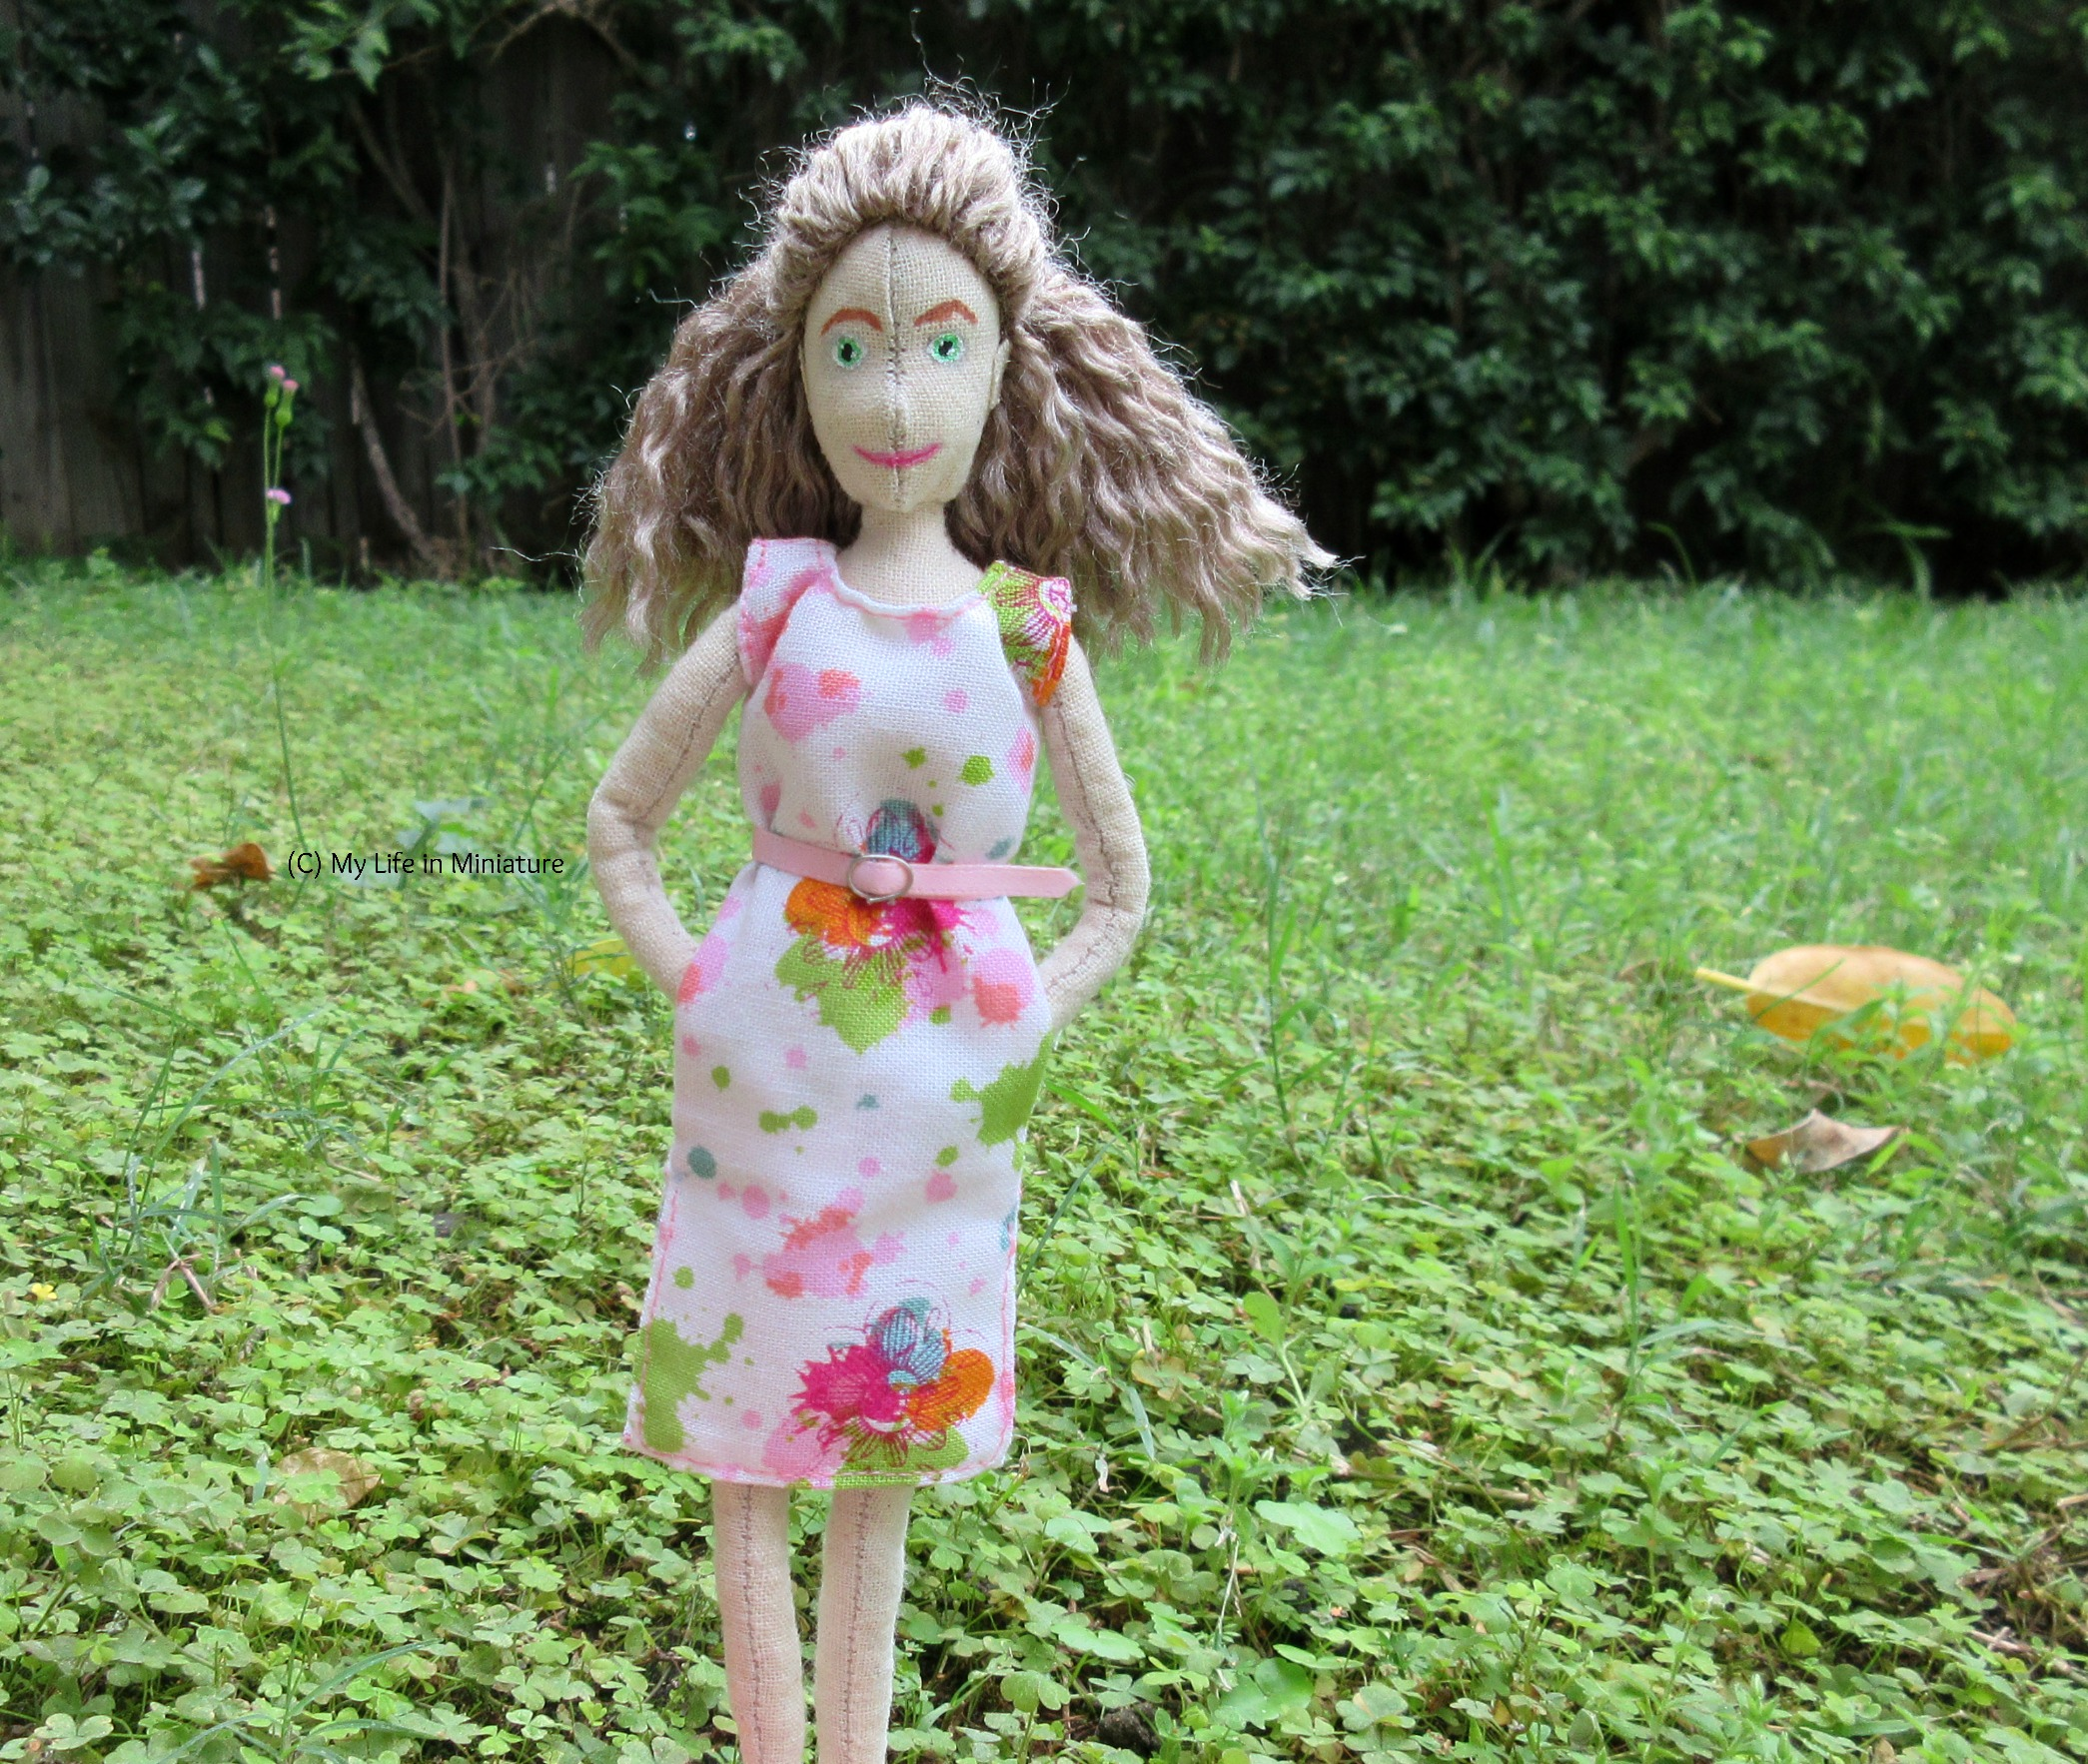 Lola stands on grass, with a hedge behind her. She wears the dress, with hands in pockets. She looks at the camera.